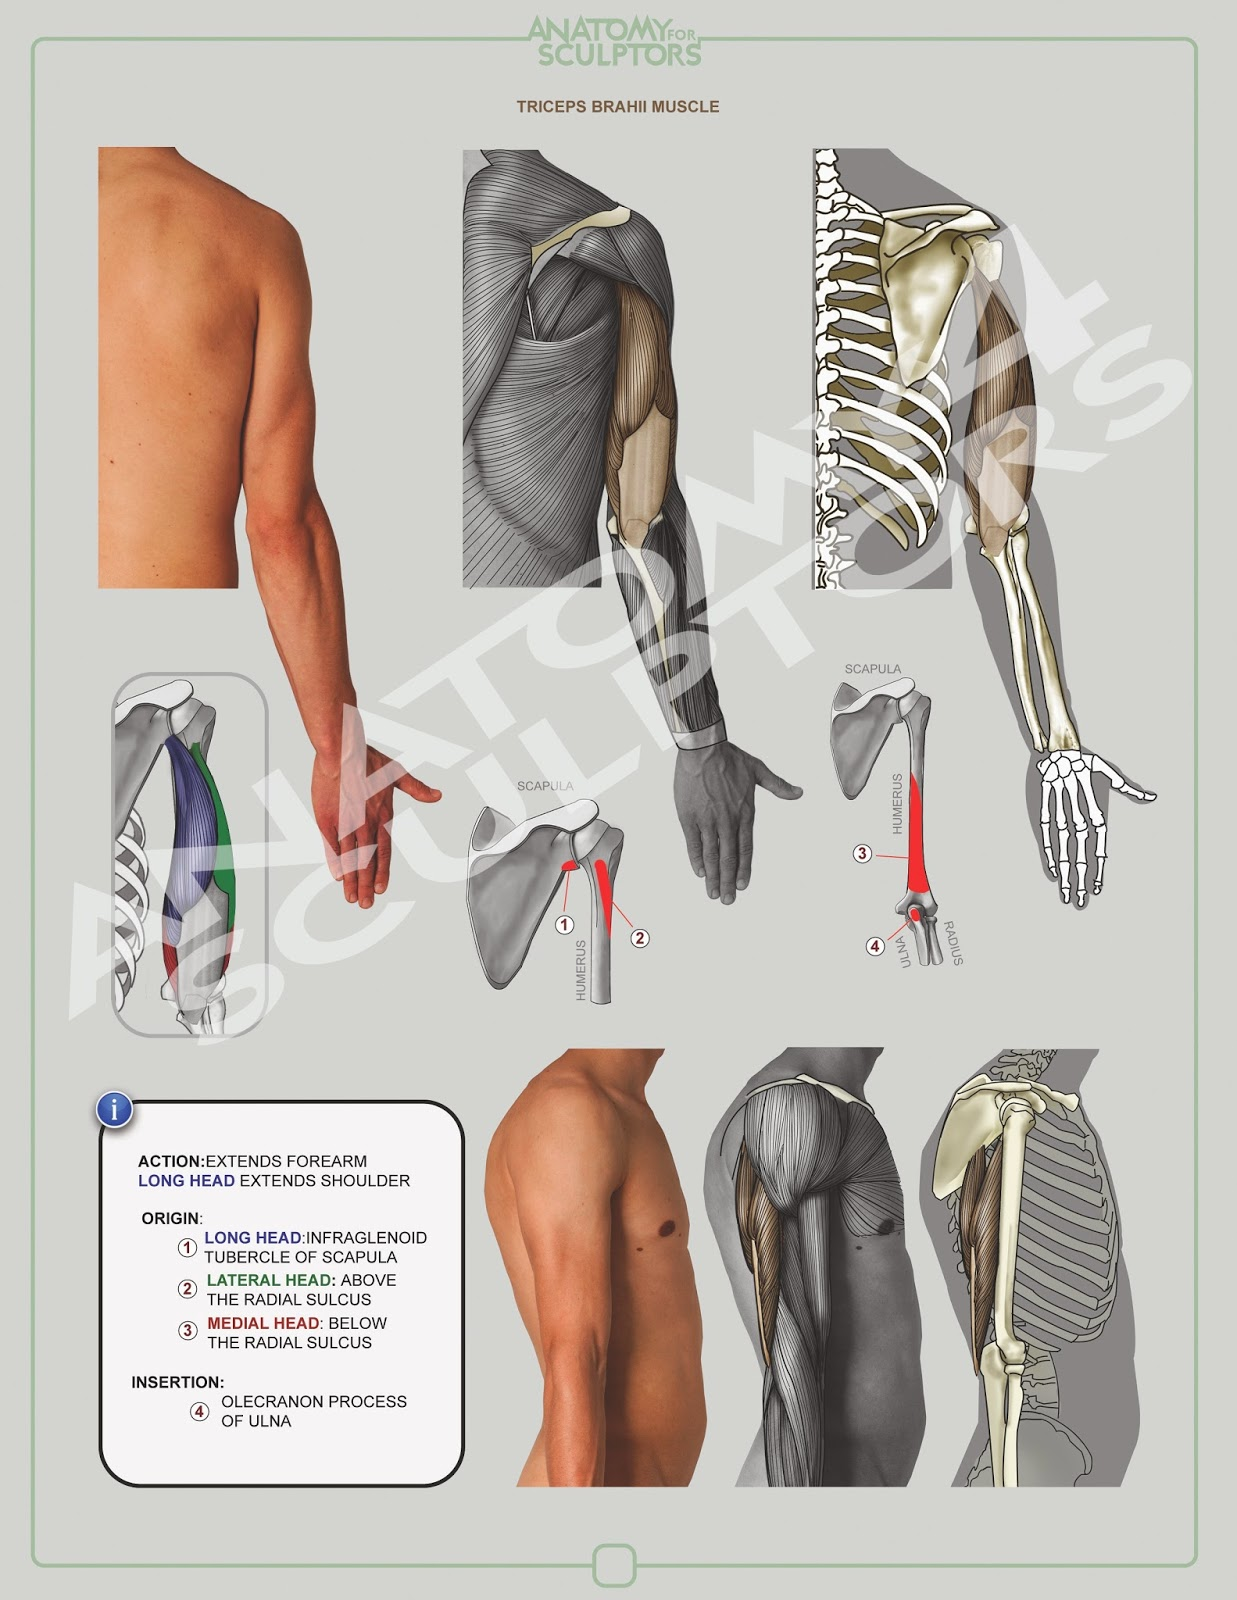 TRICEPS BRACHII MUSCLE | ANATOMY NEXT, the artist platform